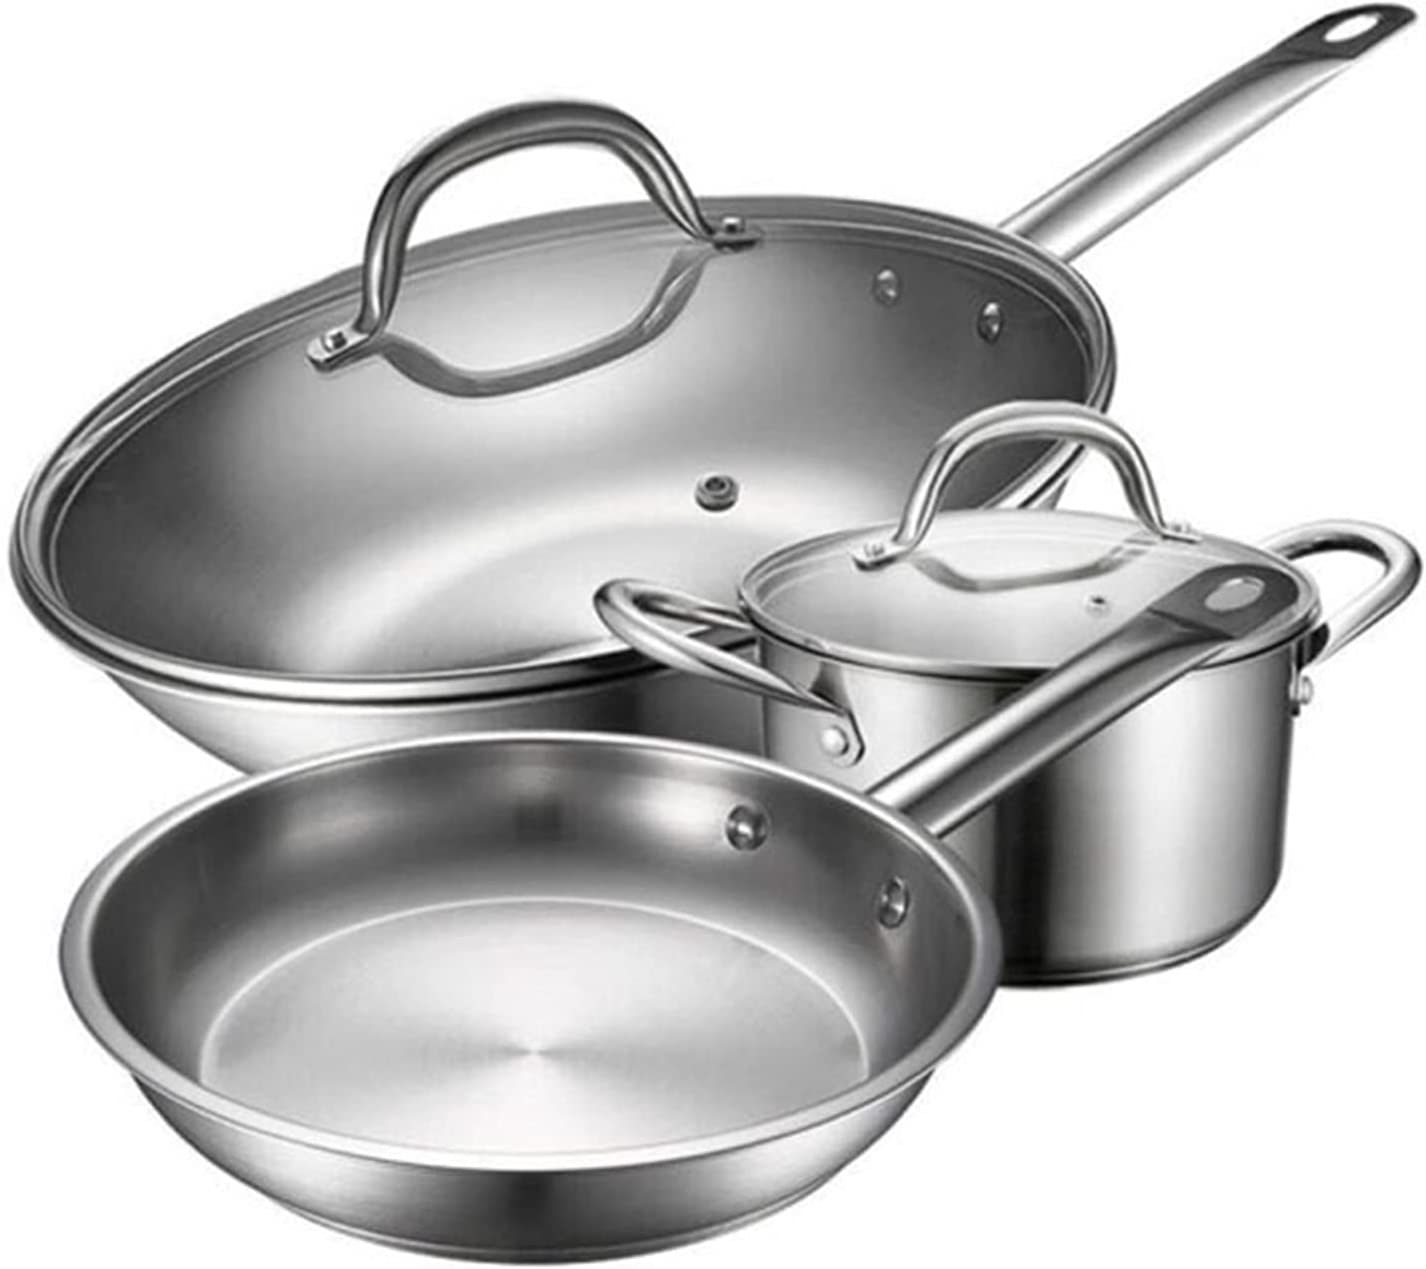 Max 64% OFF ZXNRTU 3 Piece Cookware Set Non-Stick Coating Great interest Dishwasher S with